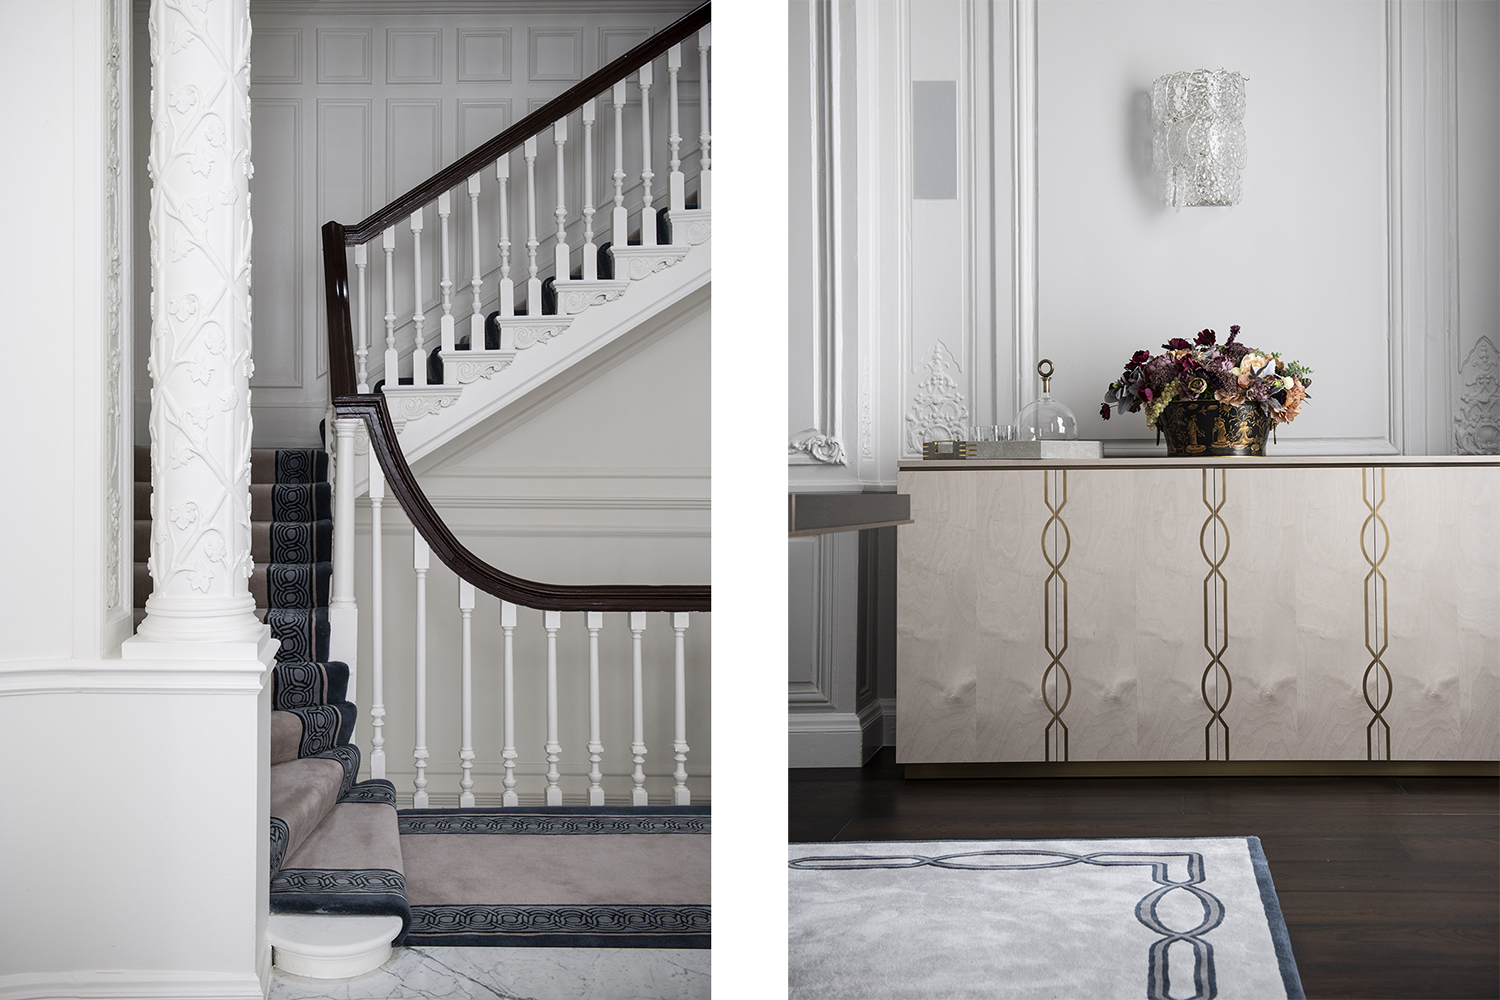 PROJECT FOCUS: GRADE II LISTED TOWNHOUSE, MAYFAIR INTERIOR DESIGN BY SCHILLER BEYNON